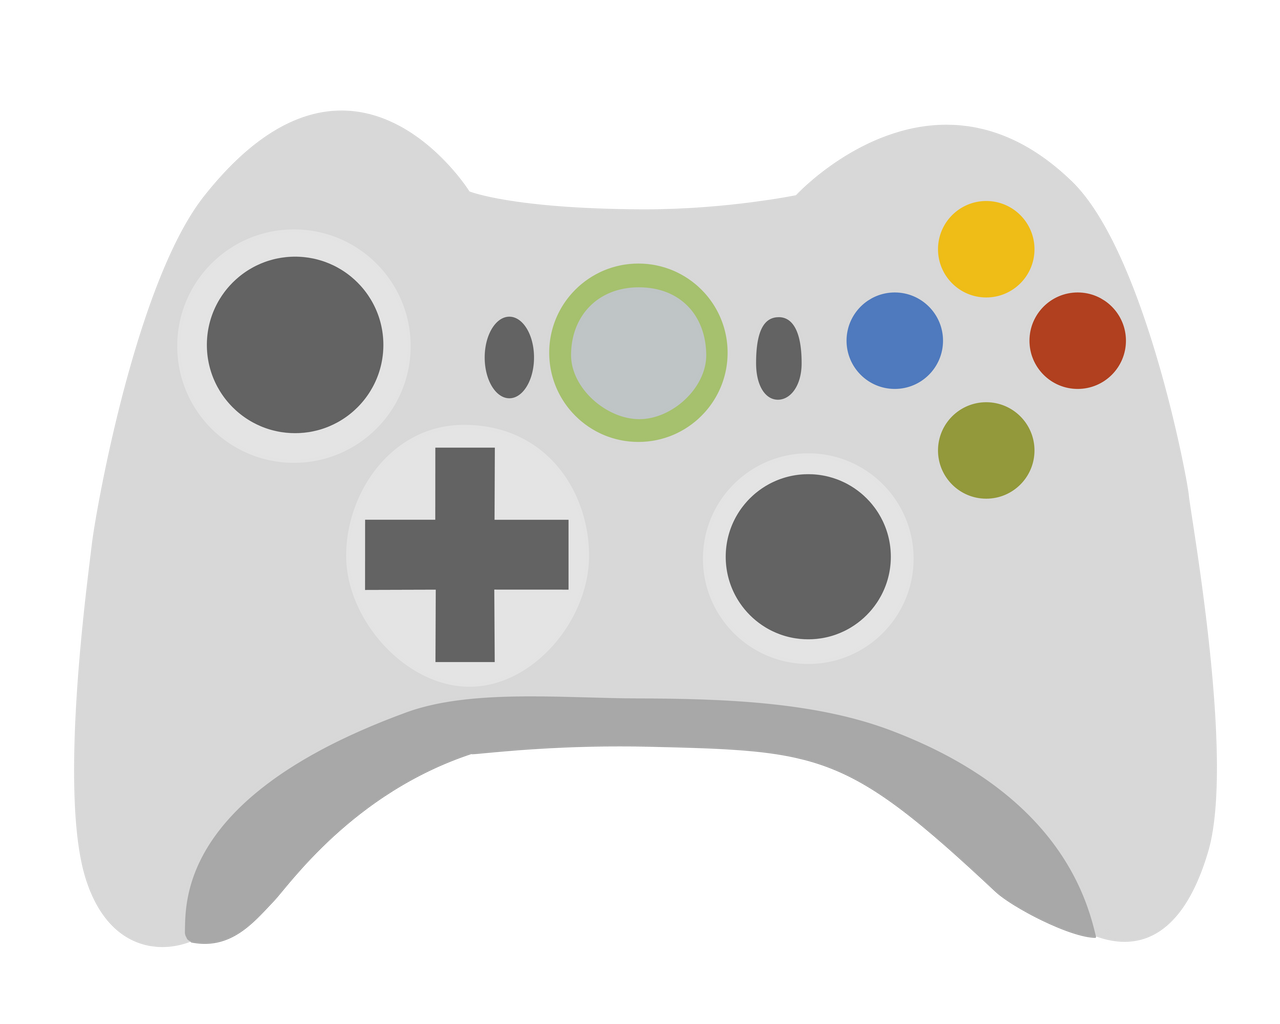 Line Drawing Xbox Controller : Old xbox controller cutie mark by ikillyou on